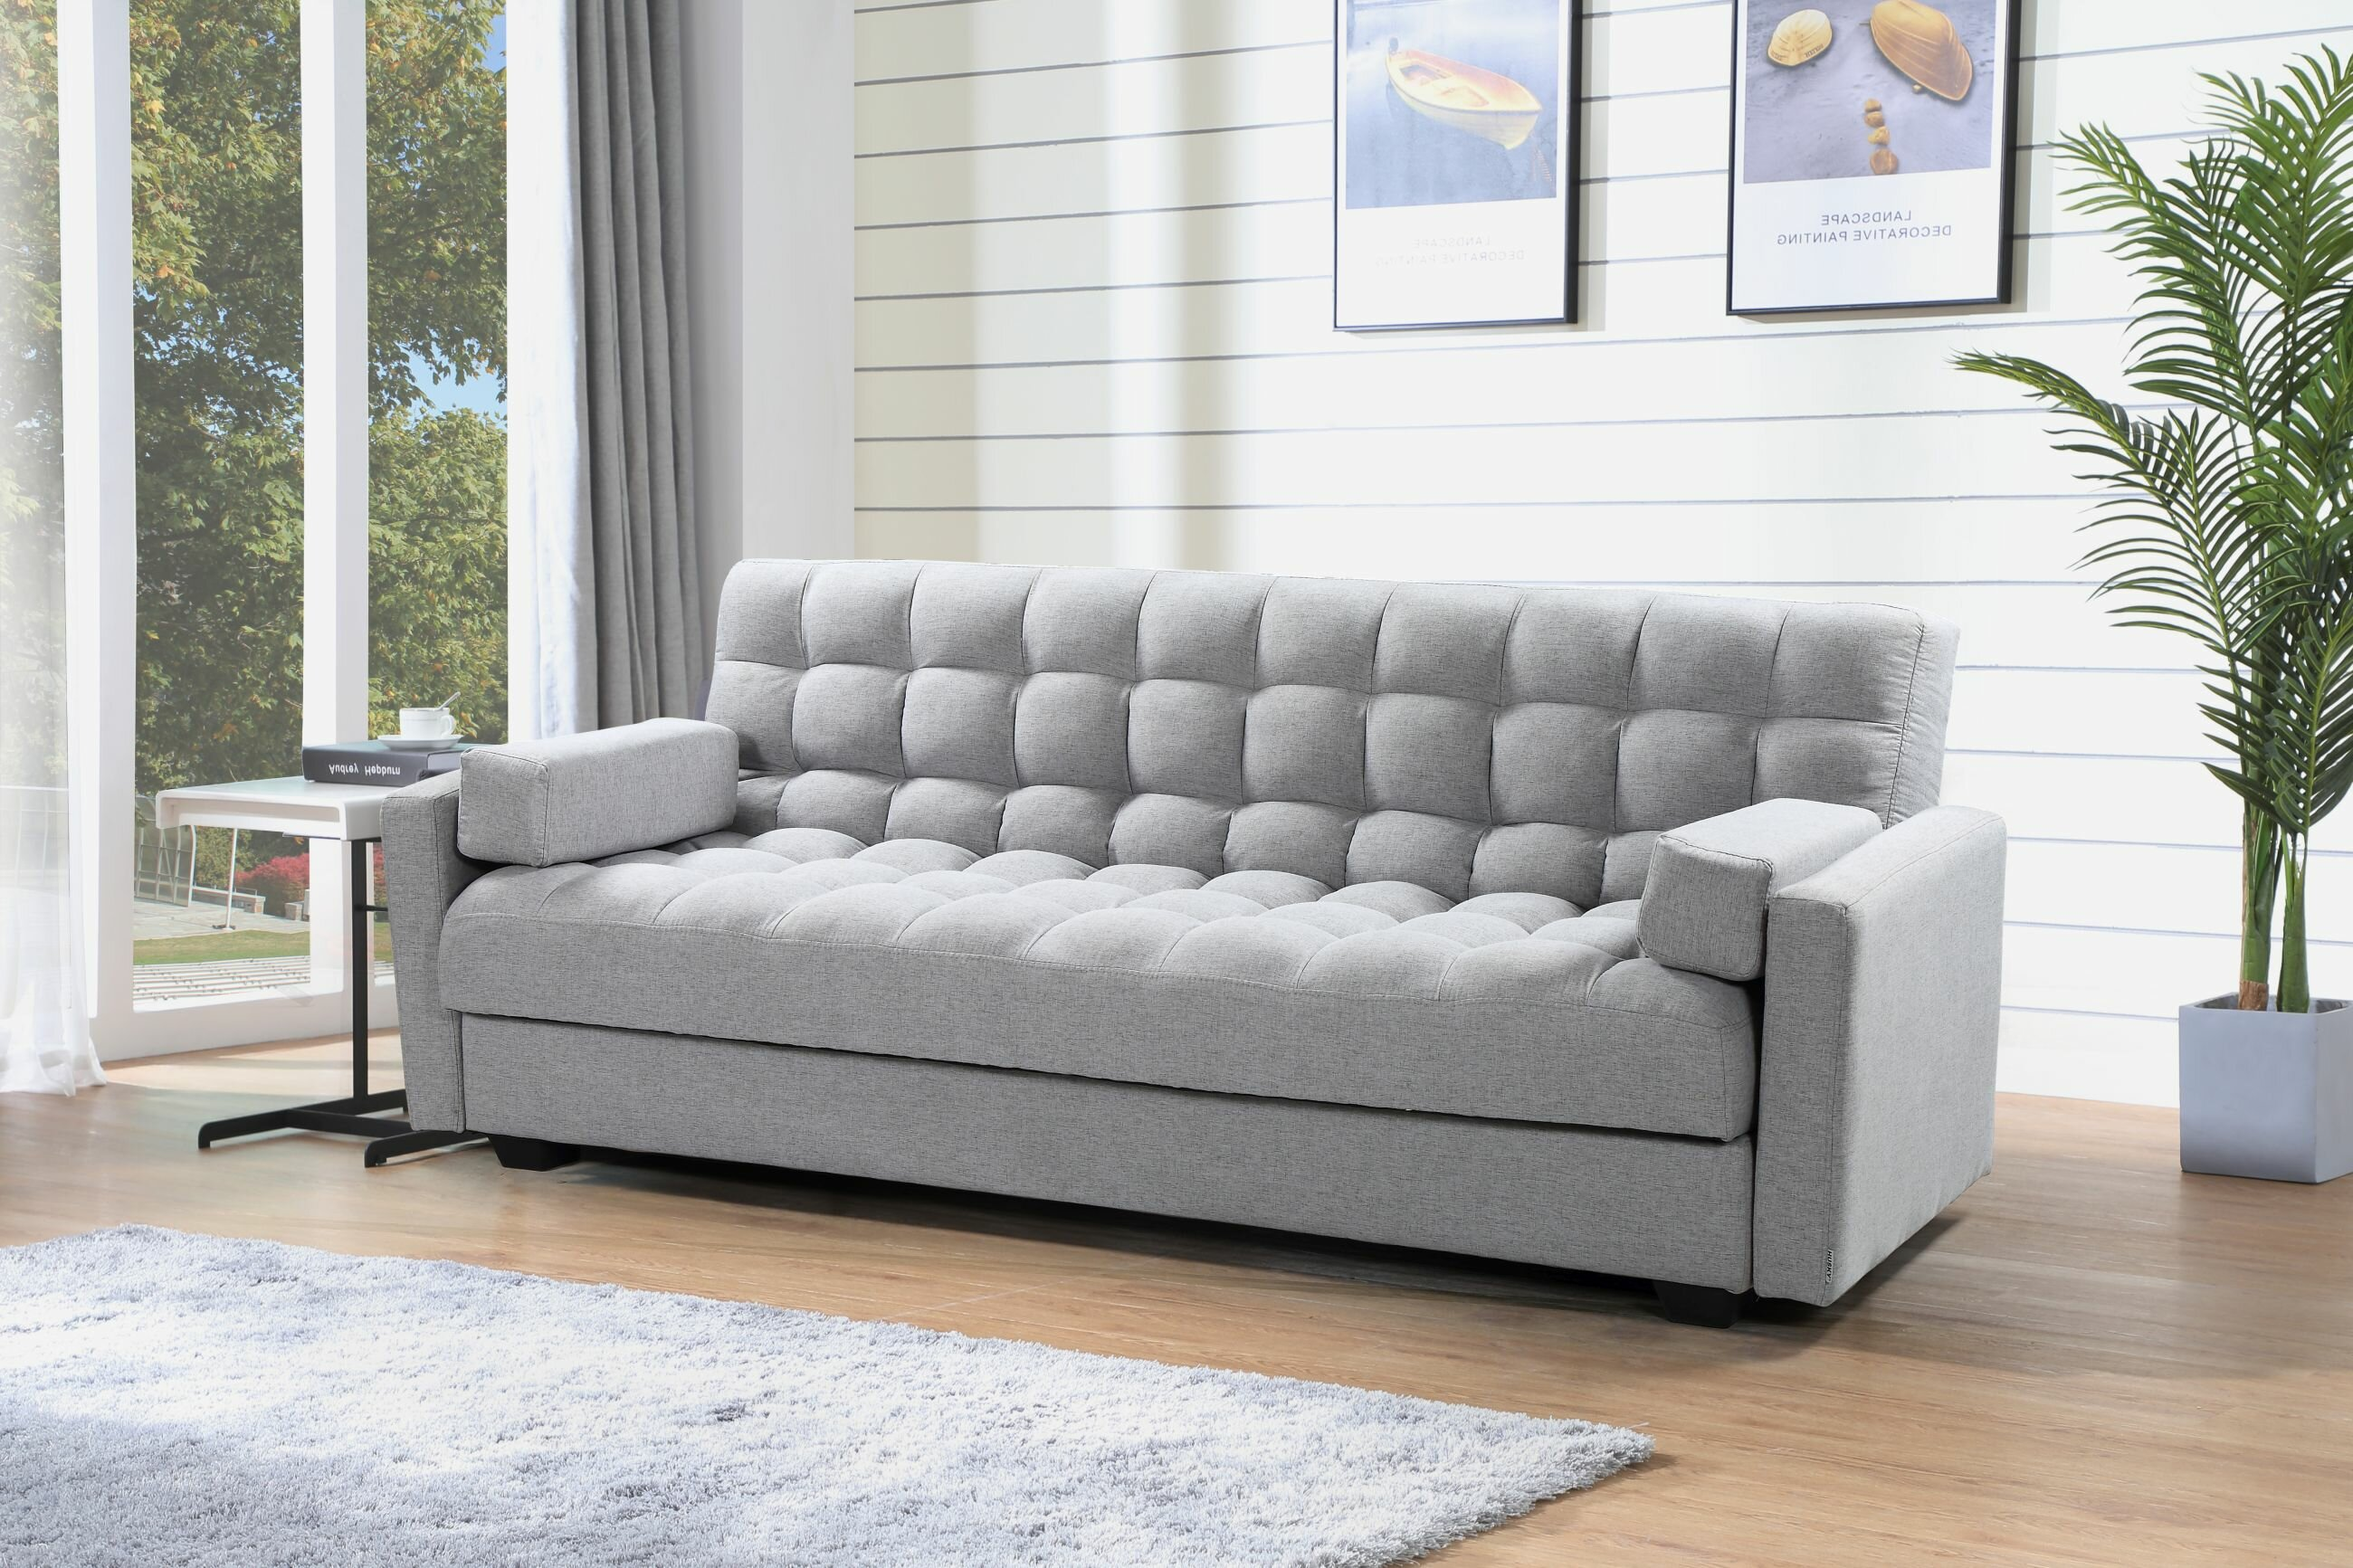 ebern designs breazeale 3 in 1 sofa bed c